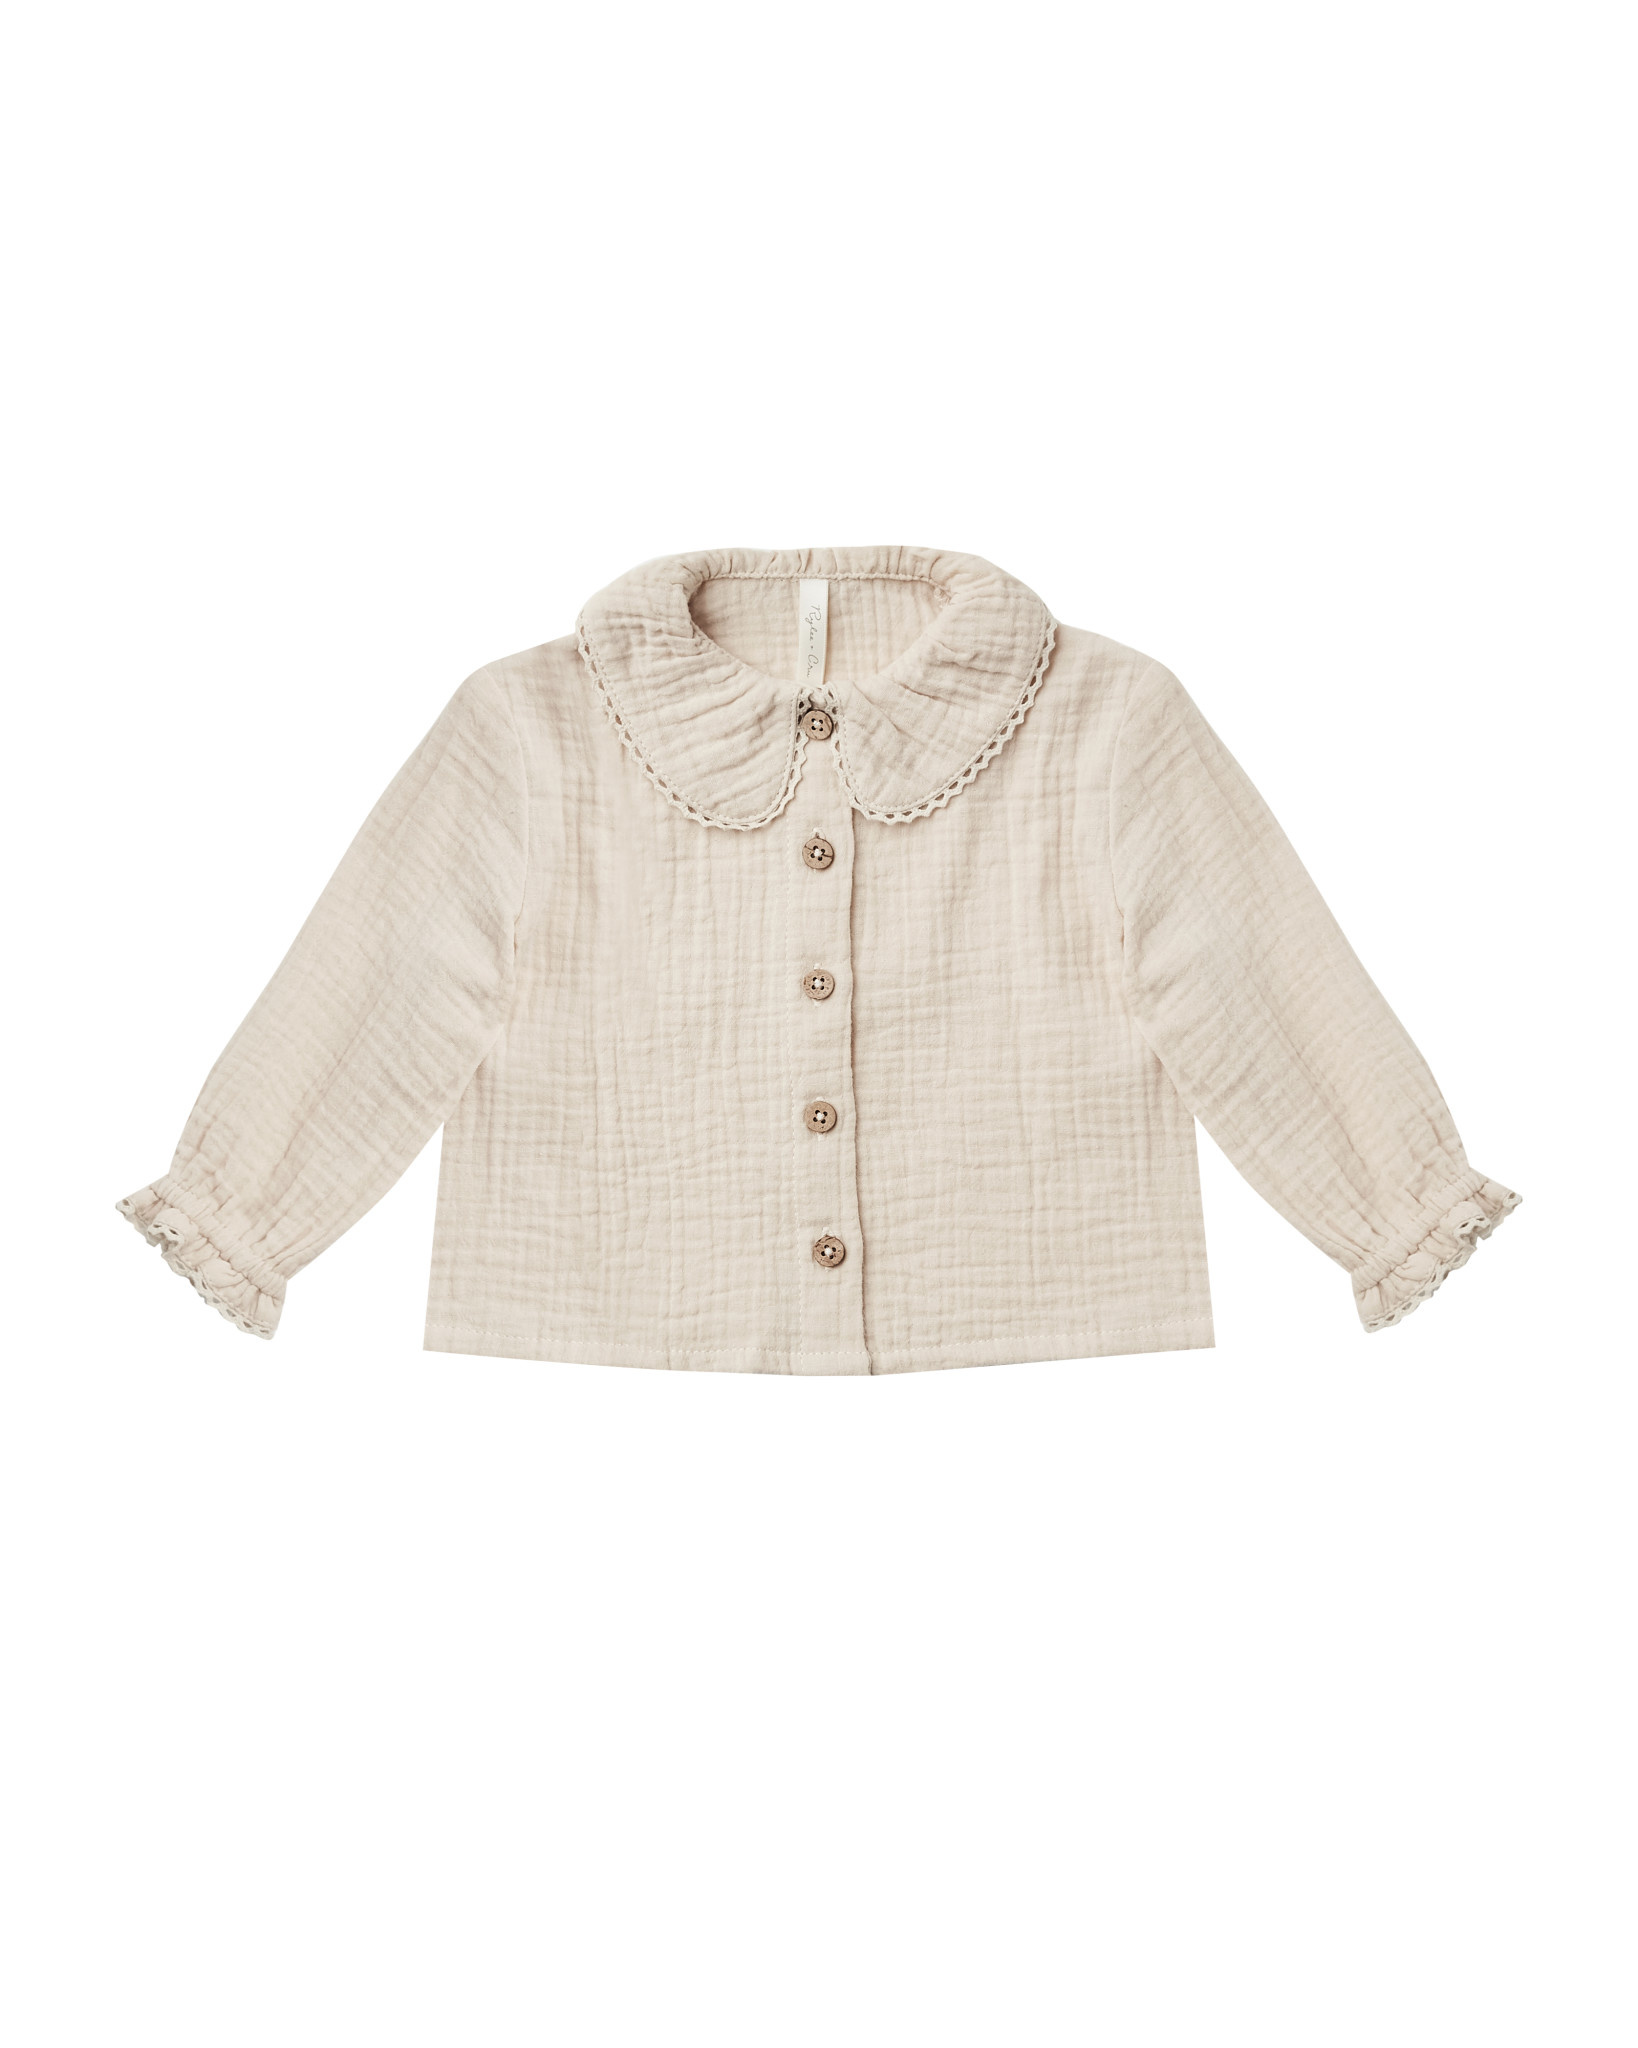 RYLEE AND CRU Oversized Collar Blouse